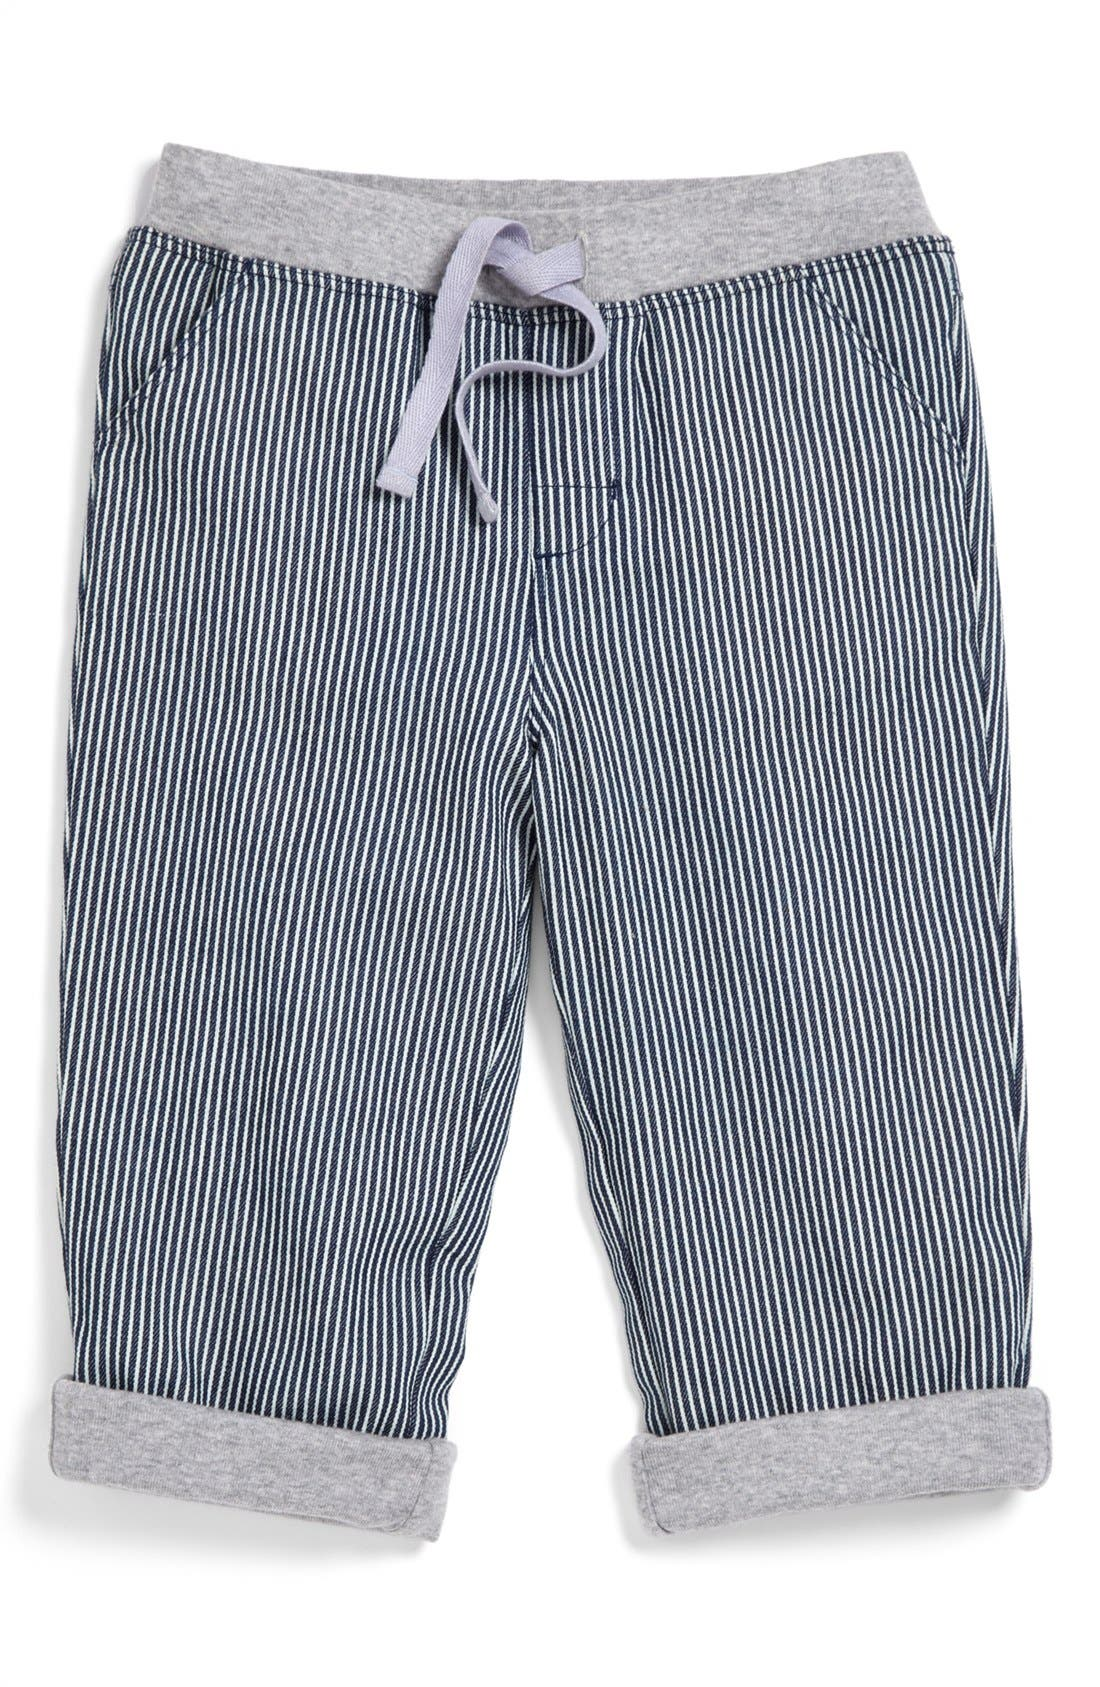 Alternate Image 1 Selected - Nordstrom Baby Striped Pants (Baby Boys)